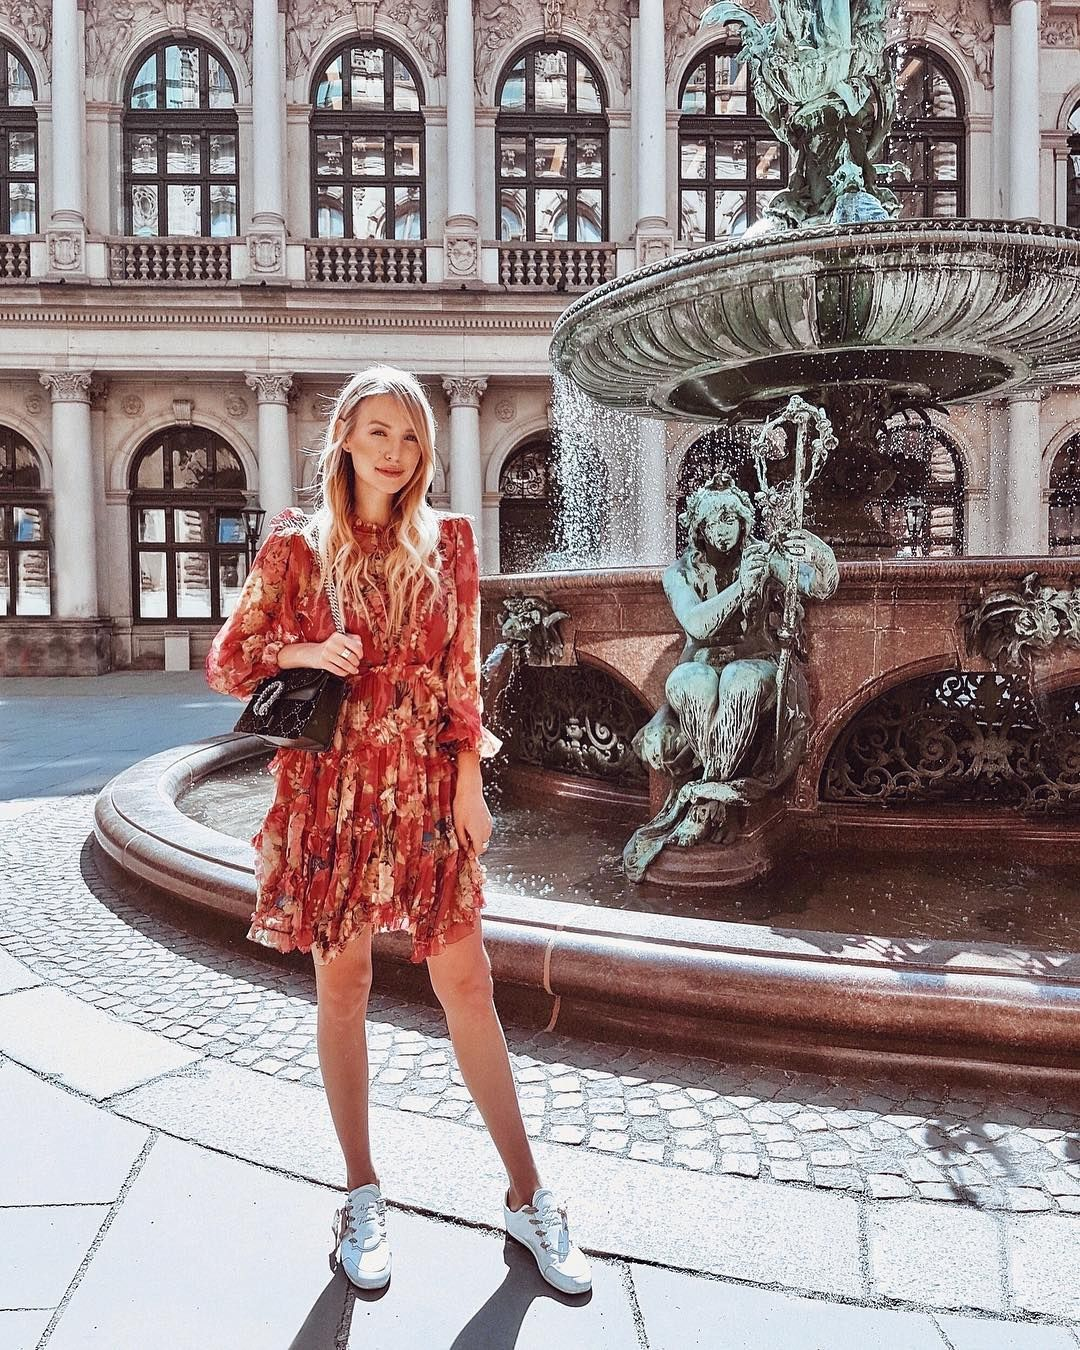 Leonie Hanne On Instagram The Prettiest Summer Florals For The Prettiest Summer Day Wearing Flannelswoman  F0 9f 8c B9 Flannelswoman Zimmermann Gucci Anzeige